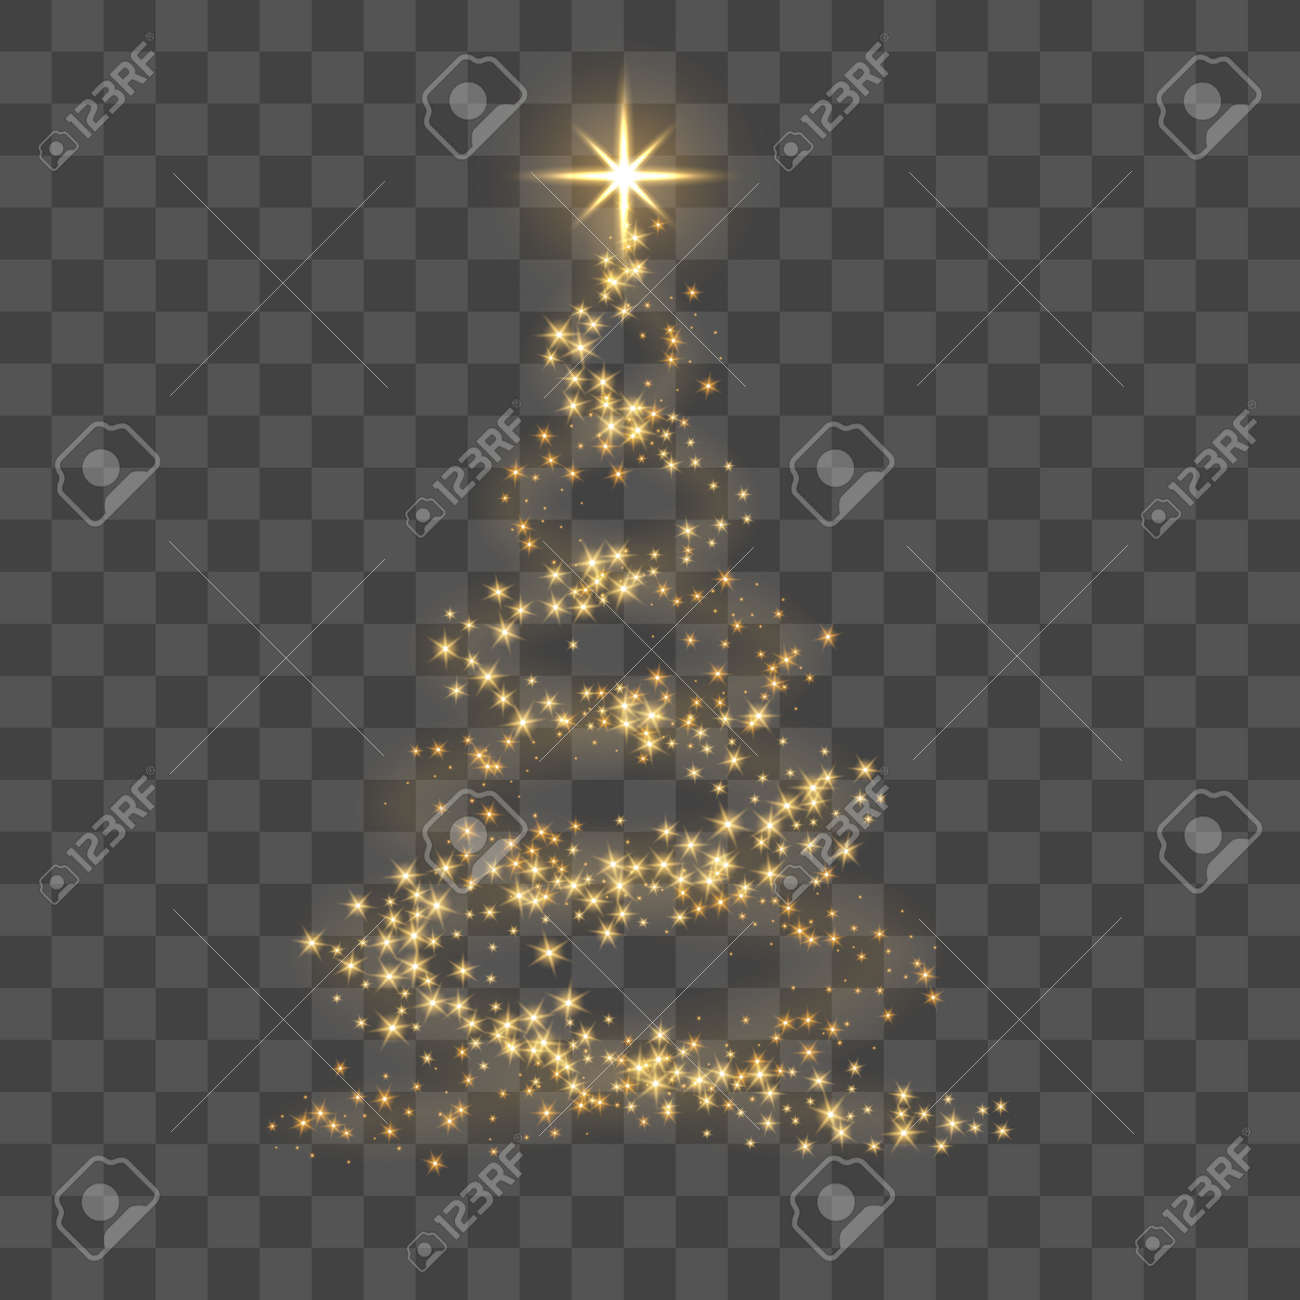 christmas tree on transparent background gold christmas tree royalty free cliparts vectors and stock illustration image 88548609 christmas tree on transparent background gold christmas tree